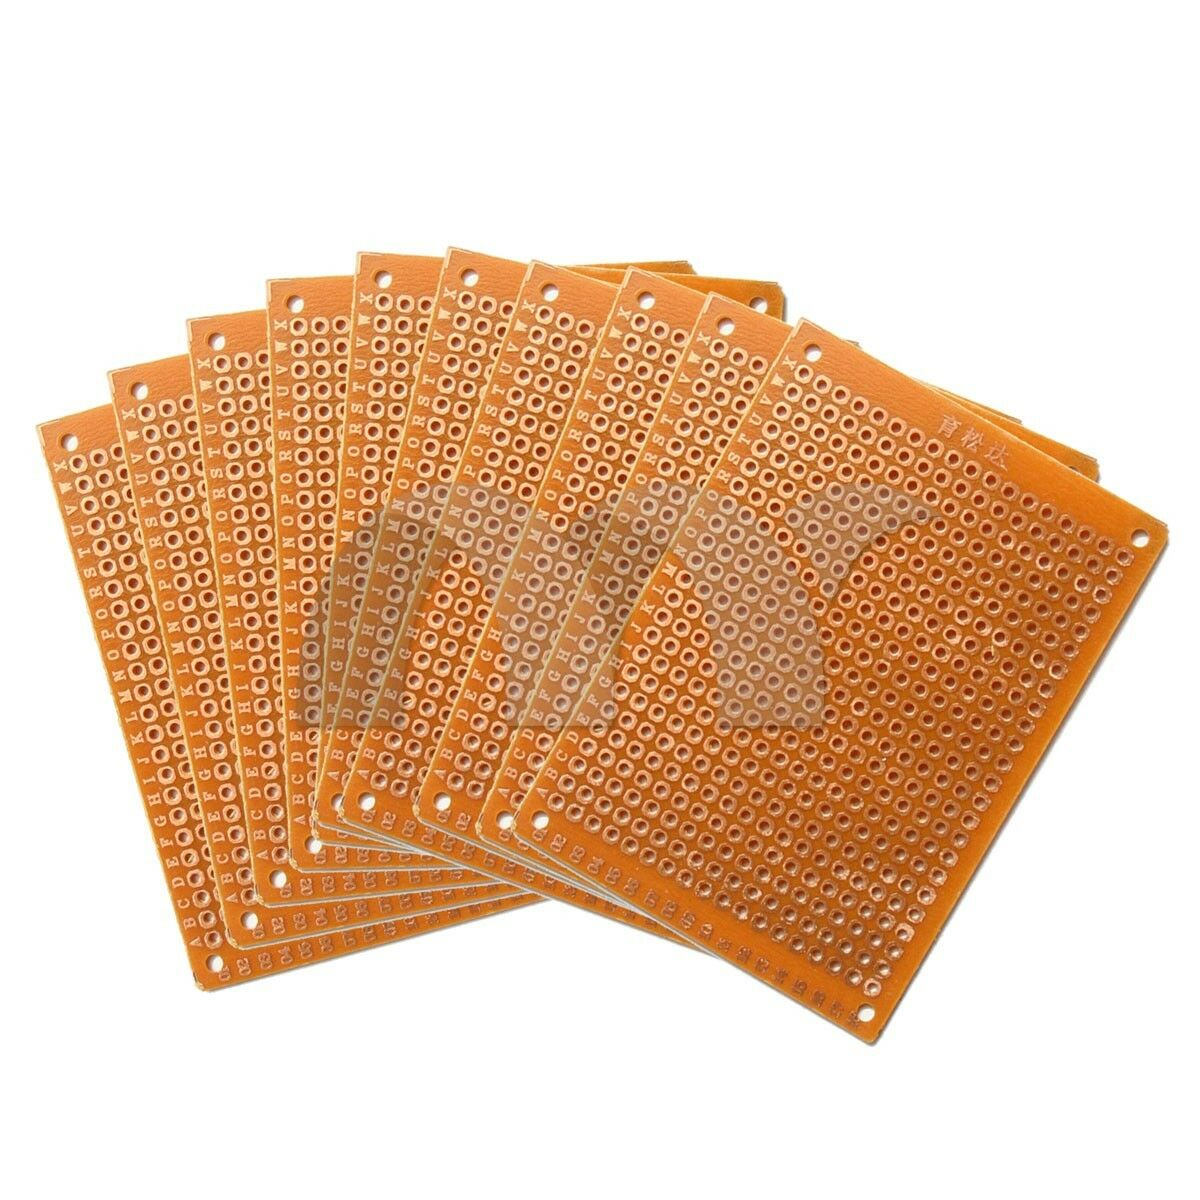 10xdiy Single Side Copper Pcb Universal Experiment Matrix Circuit Soldering Prototype Printed Board 50x70mm 2 Ebay 10pcs Diy Paper 5 X 7cm